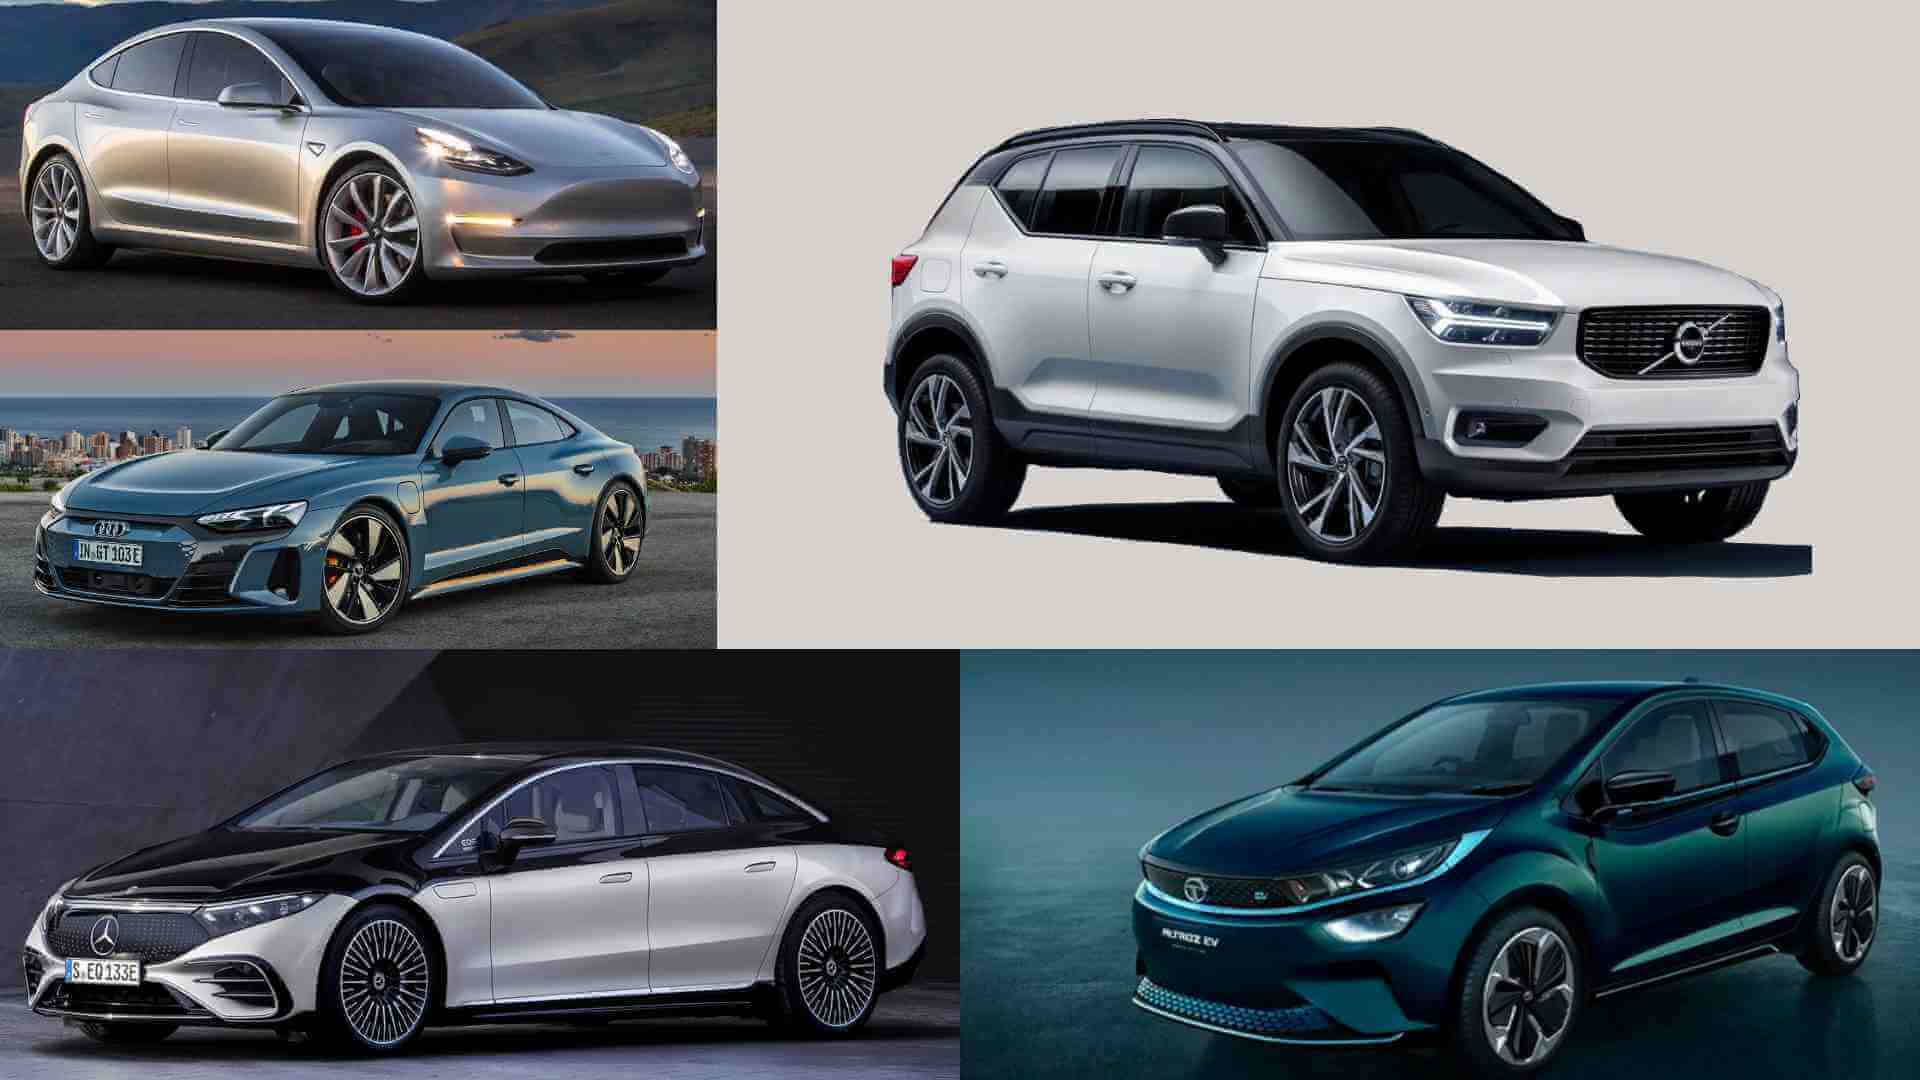 In 2021 Expected To Be Launch Electric vehicles In India